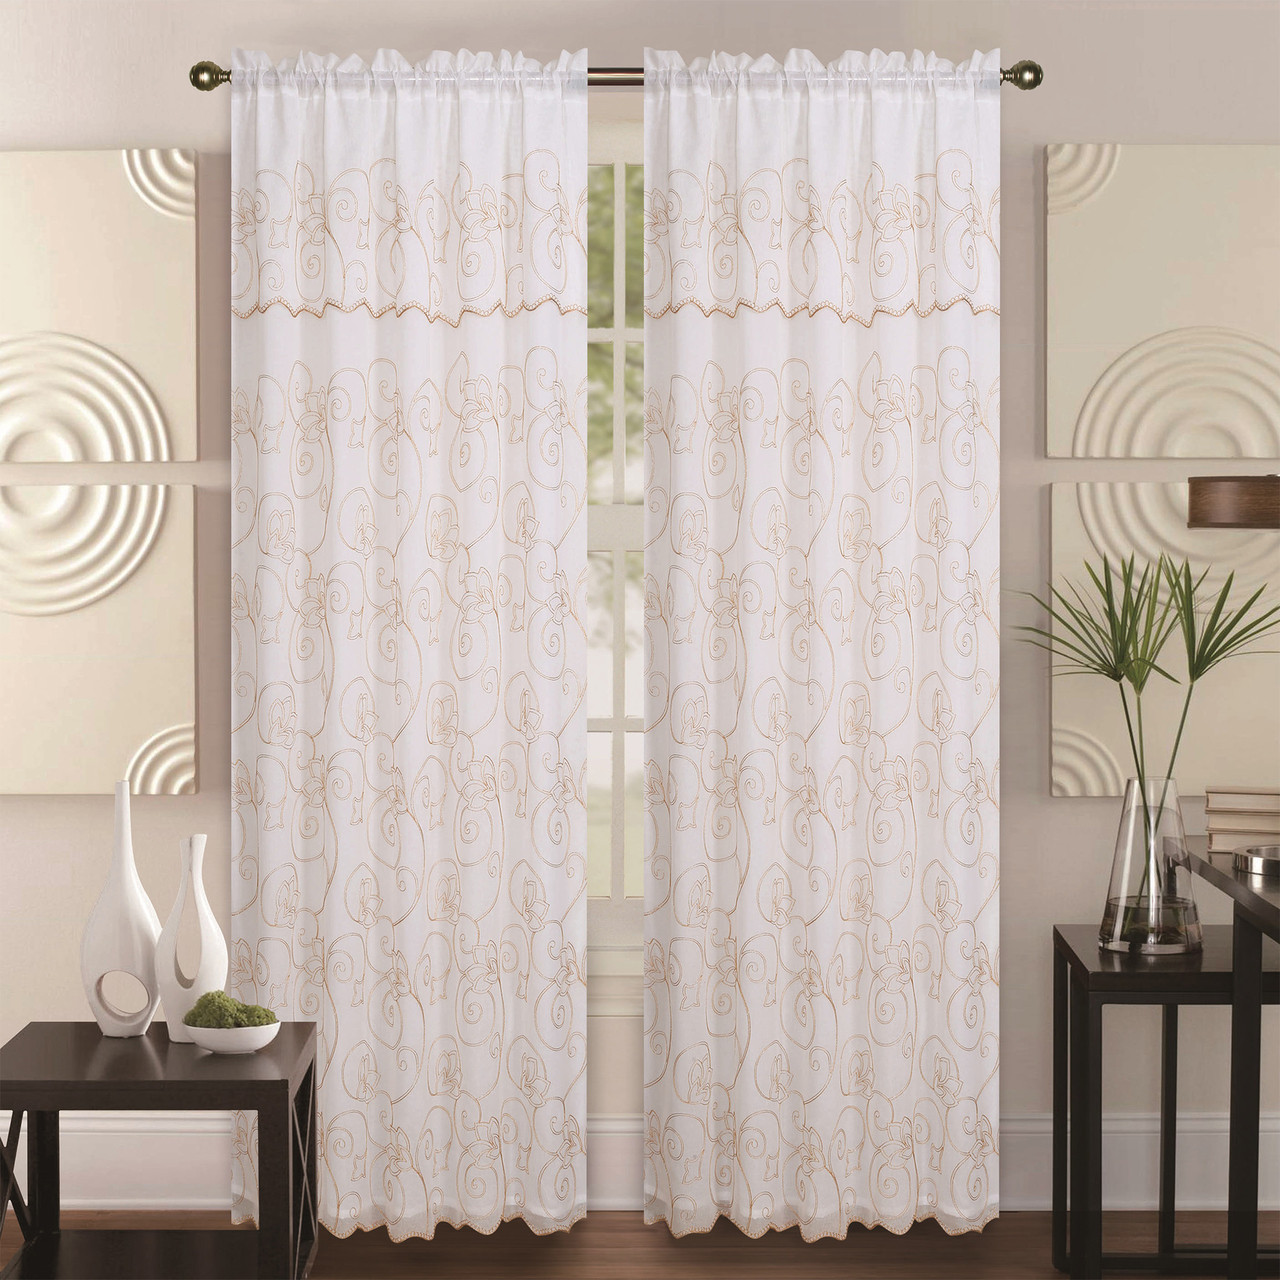 Window Curtain Double Layer Embroidery Floral Sheer Linen